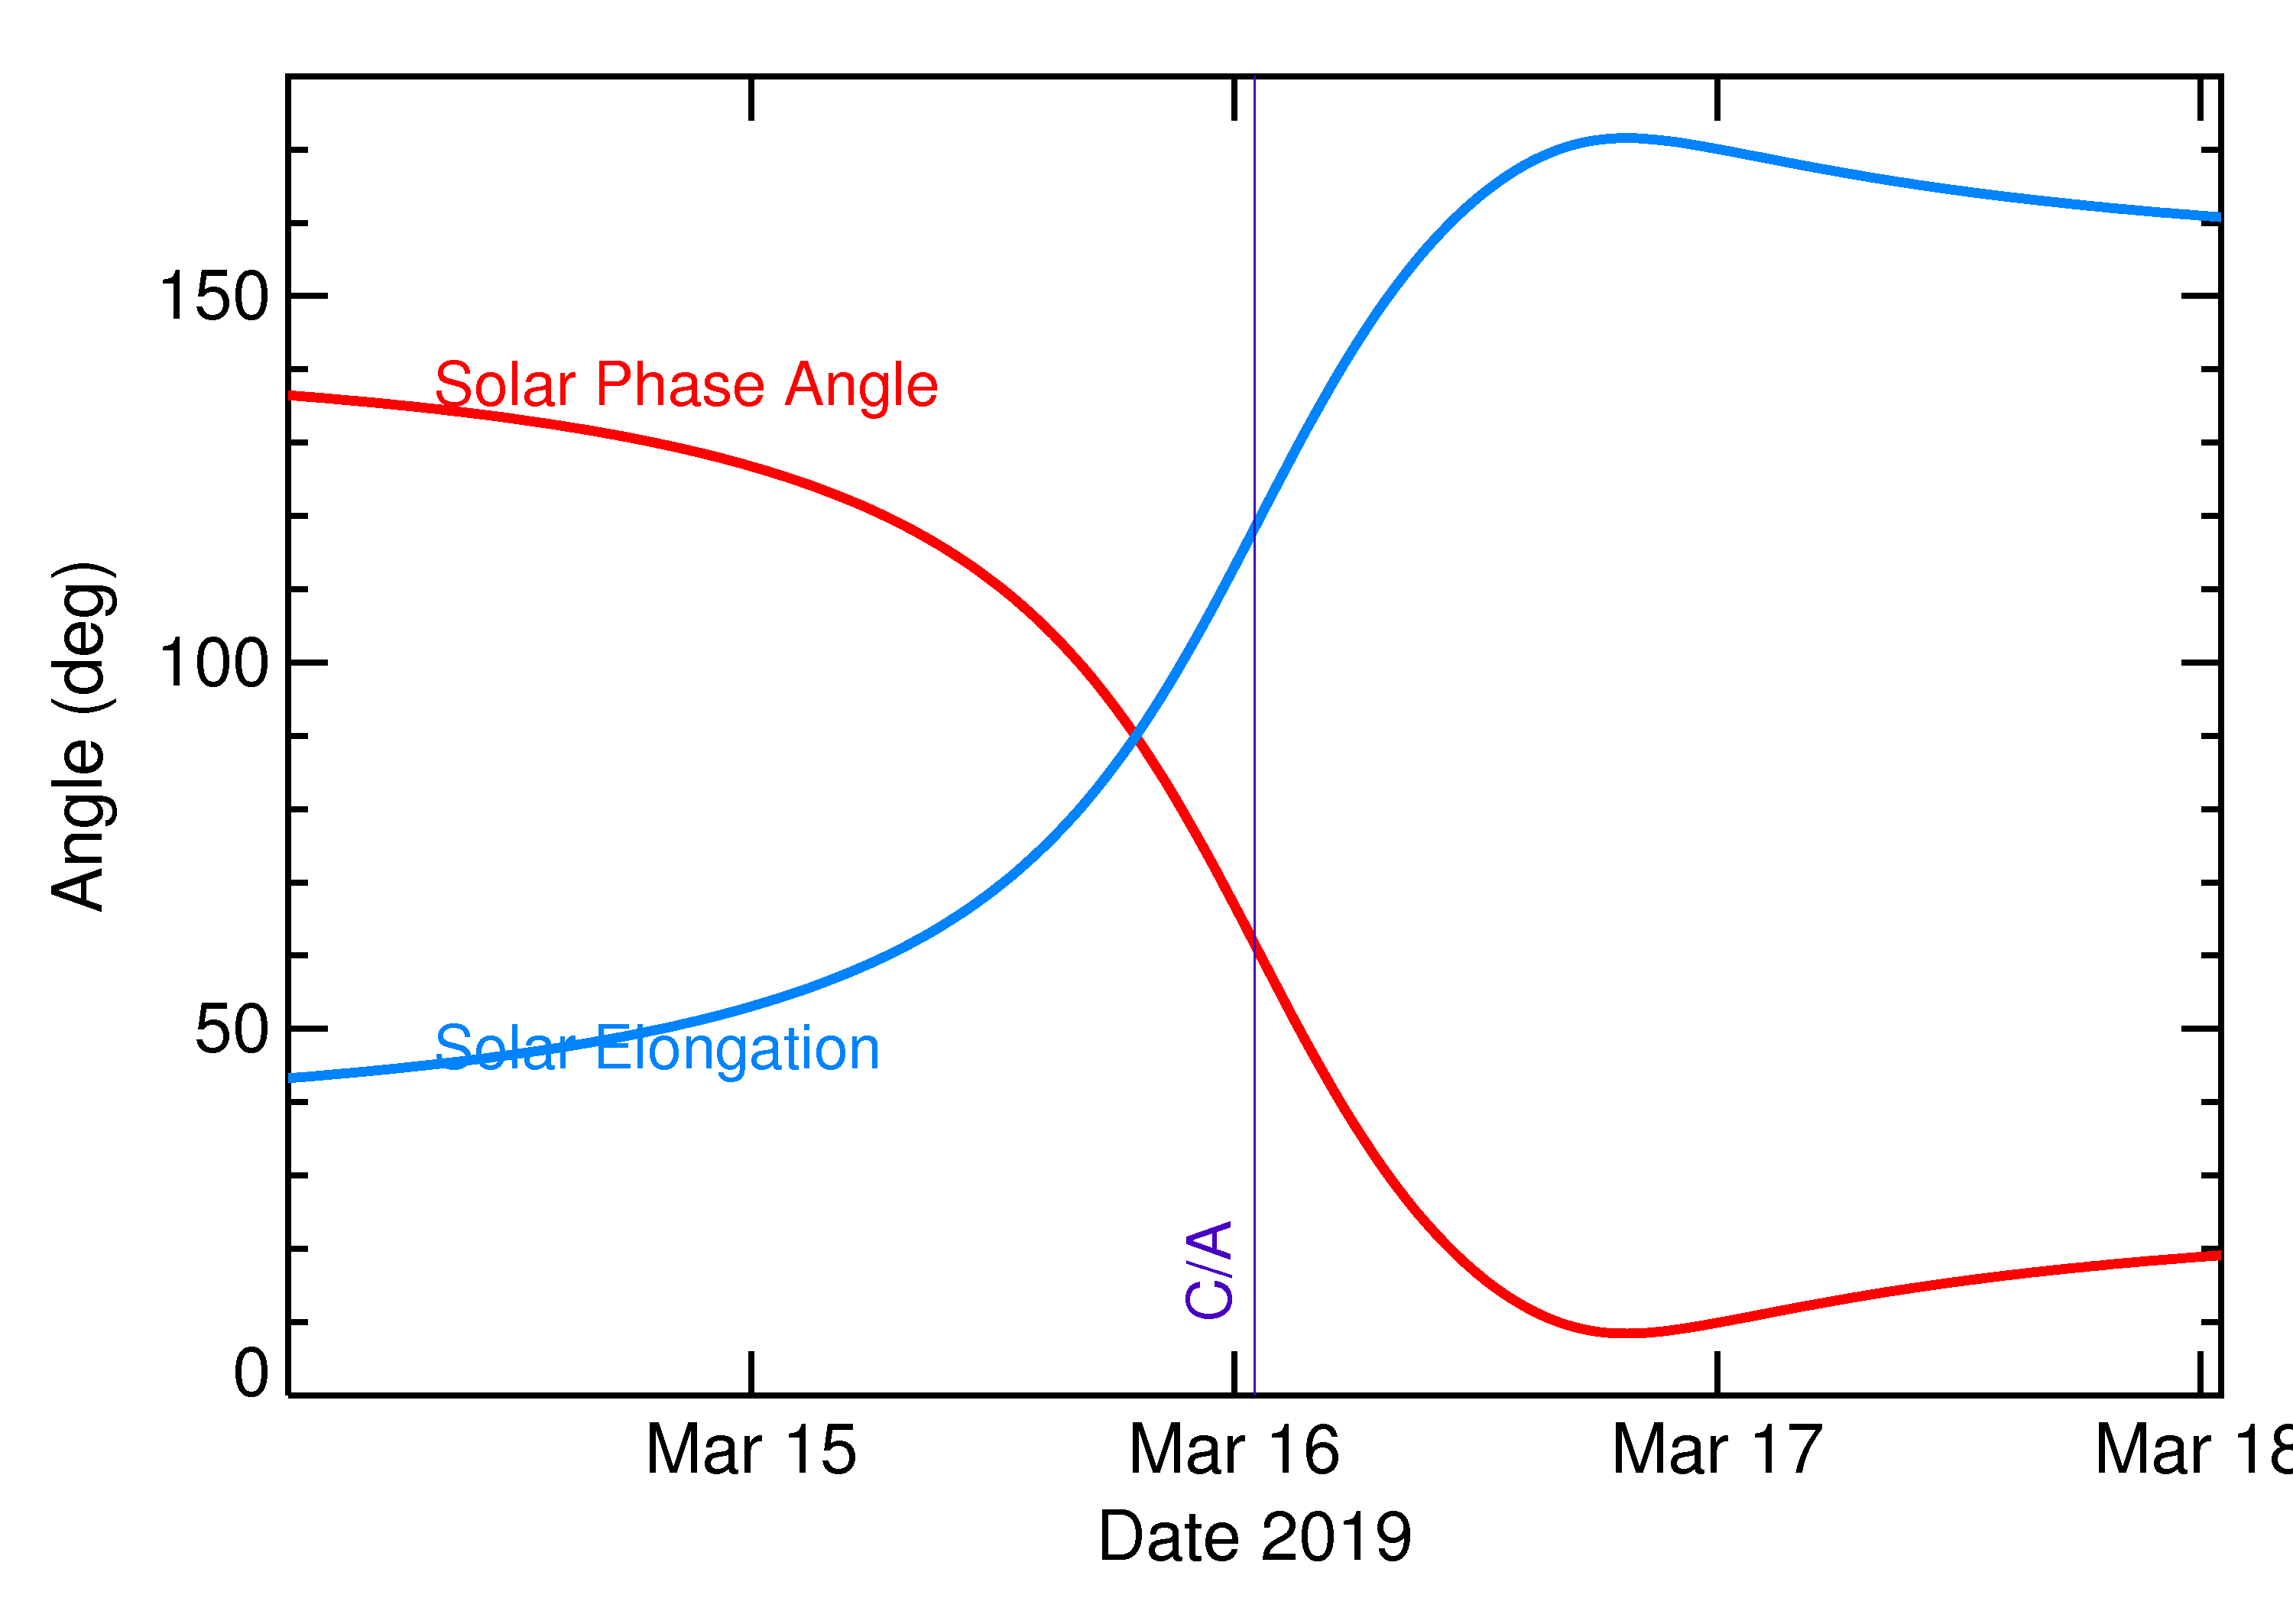 Solar Elongation and Solar Phase Angle of 2019 FA in the days around closest approach